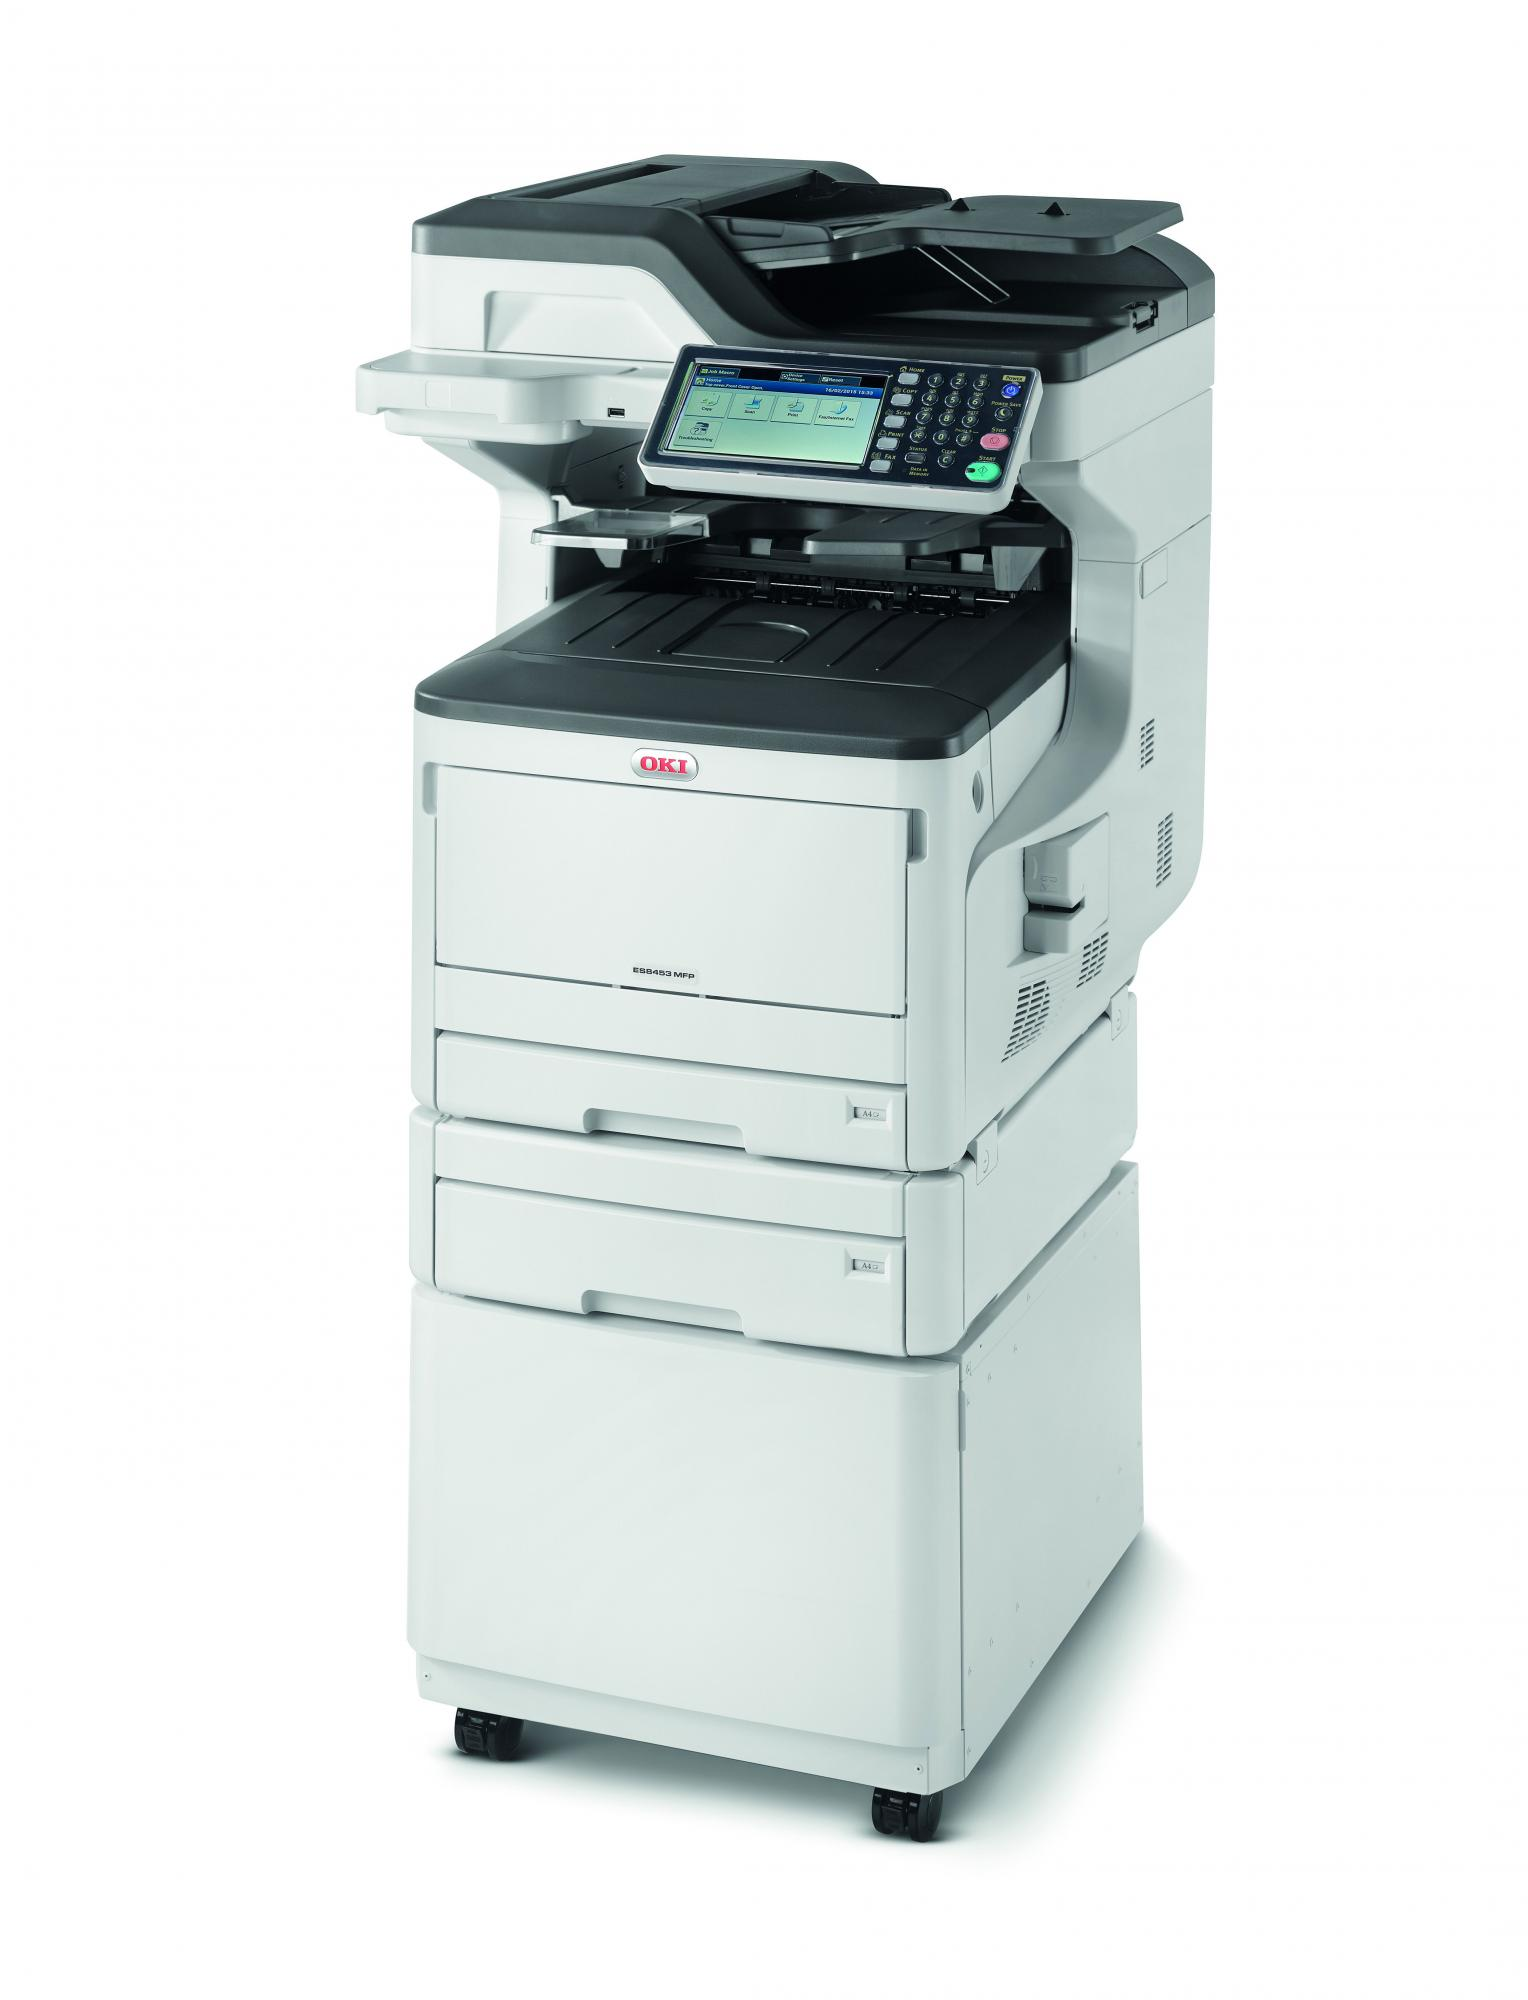 OKI ES8453dnct MFP The versatile smart MFP, simple to use and seamlessly integrated into document workflow